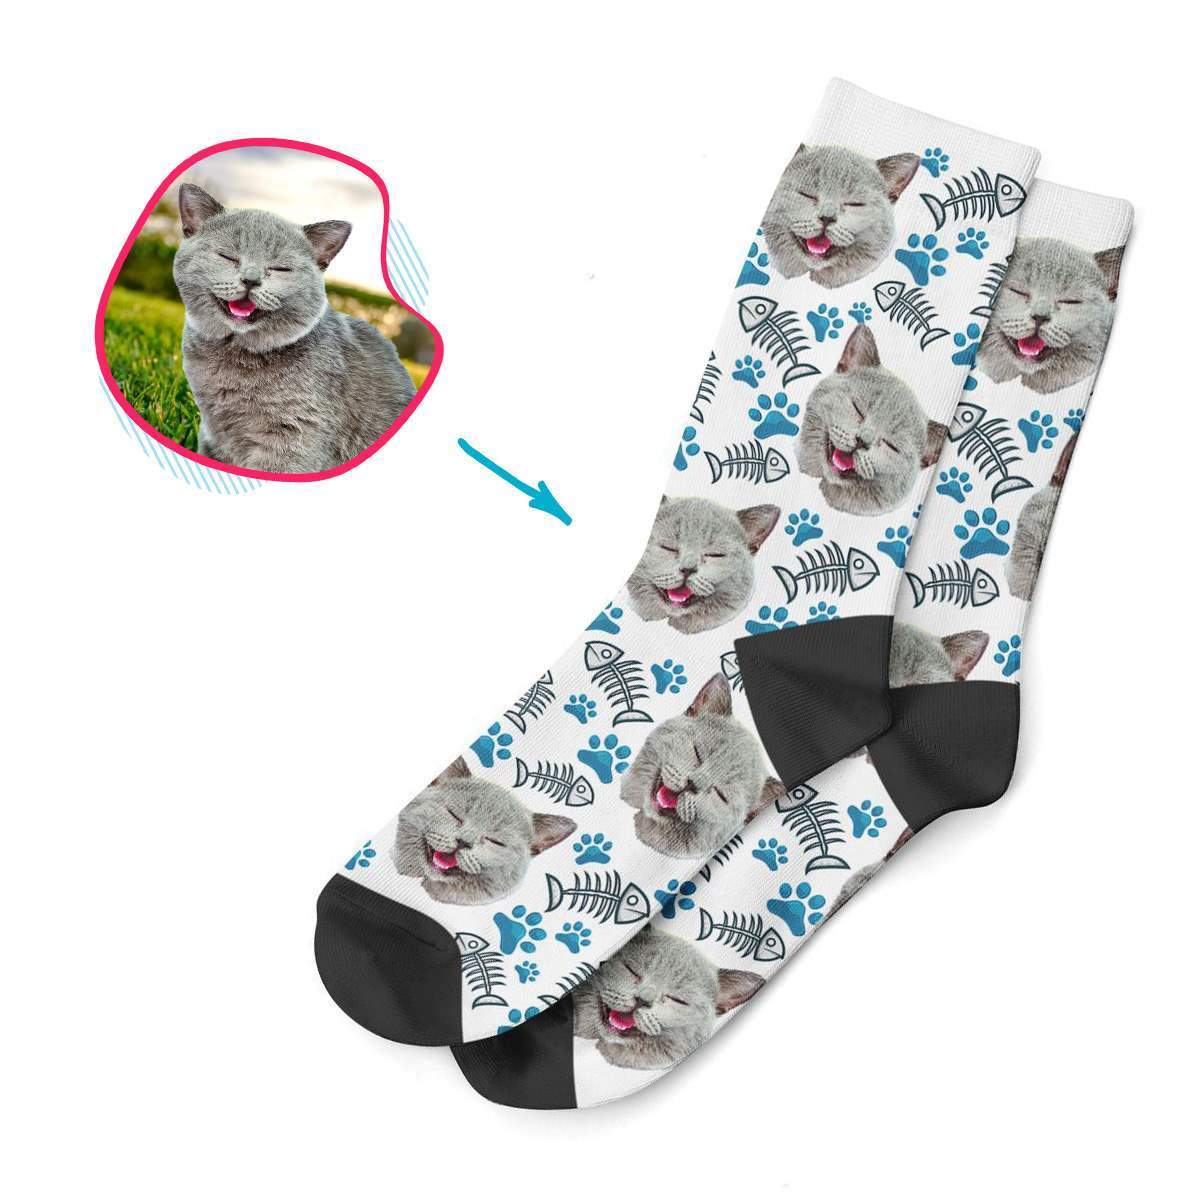 white Cat socks personalized with photo of face printed on them